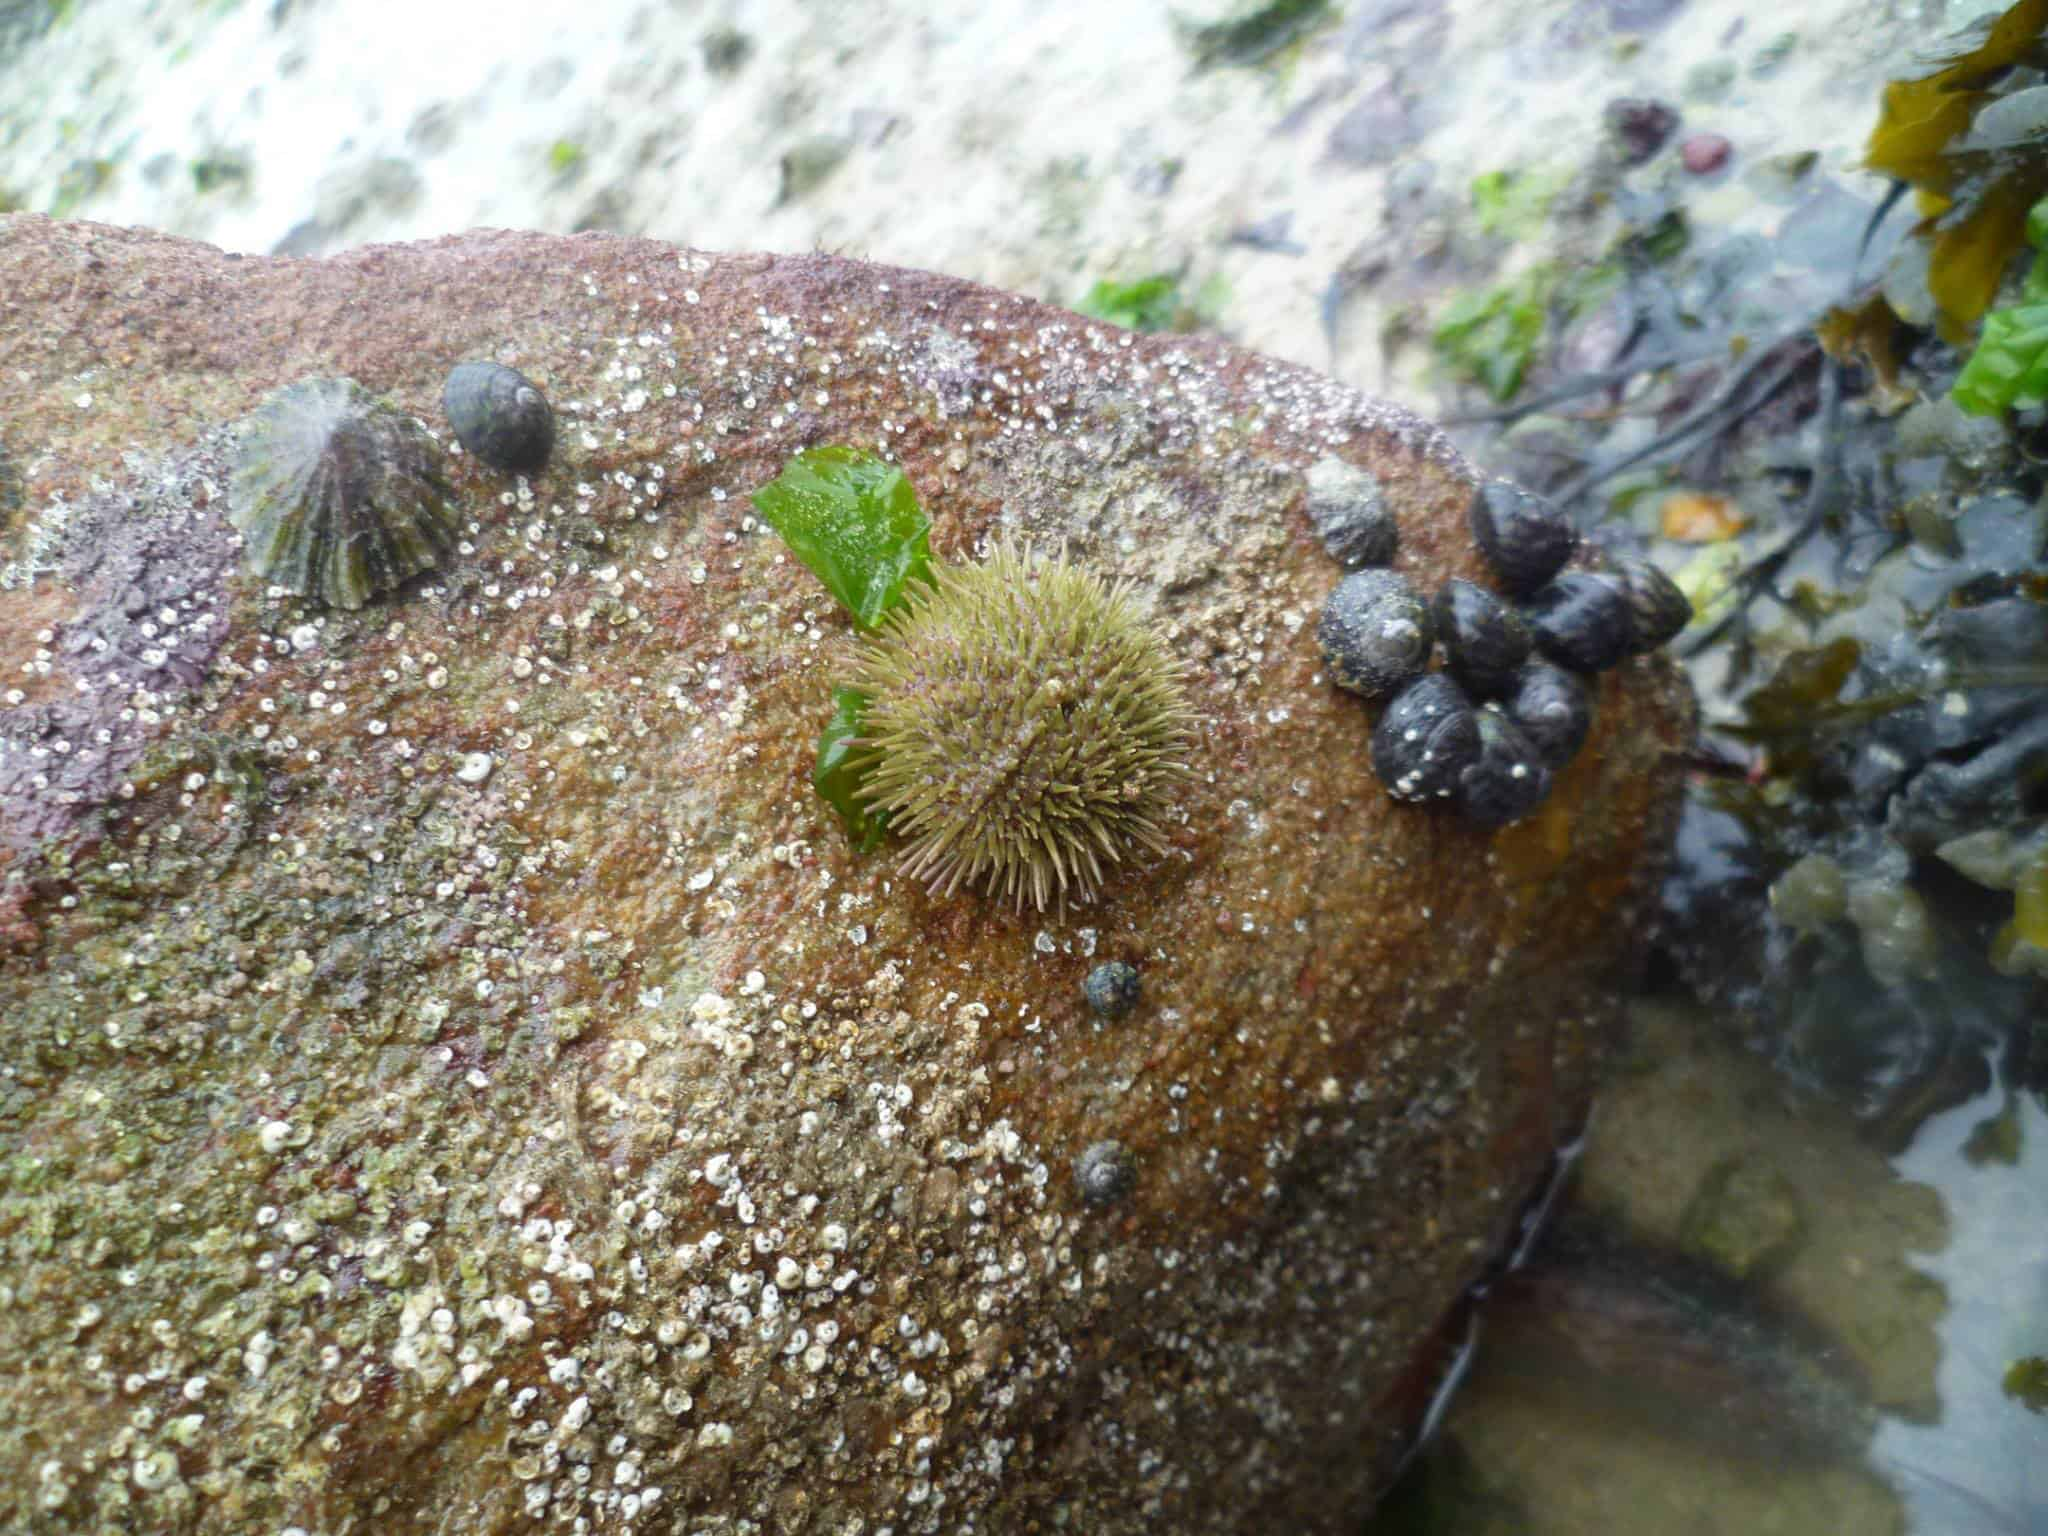 A sea urchin, limpets, and periwinkles on a tidal rock. Copyright: Alderney Wildlife Trust